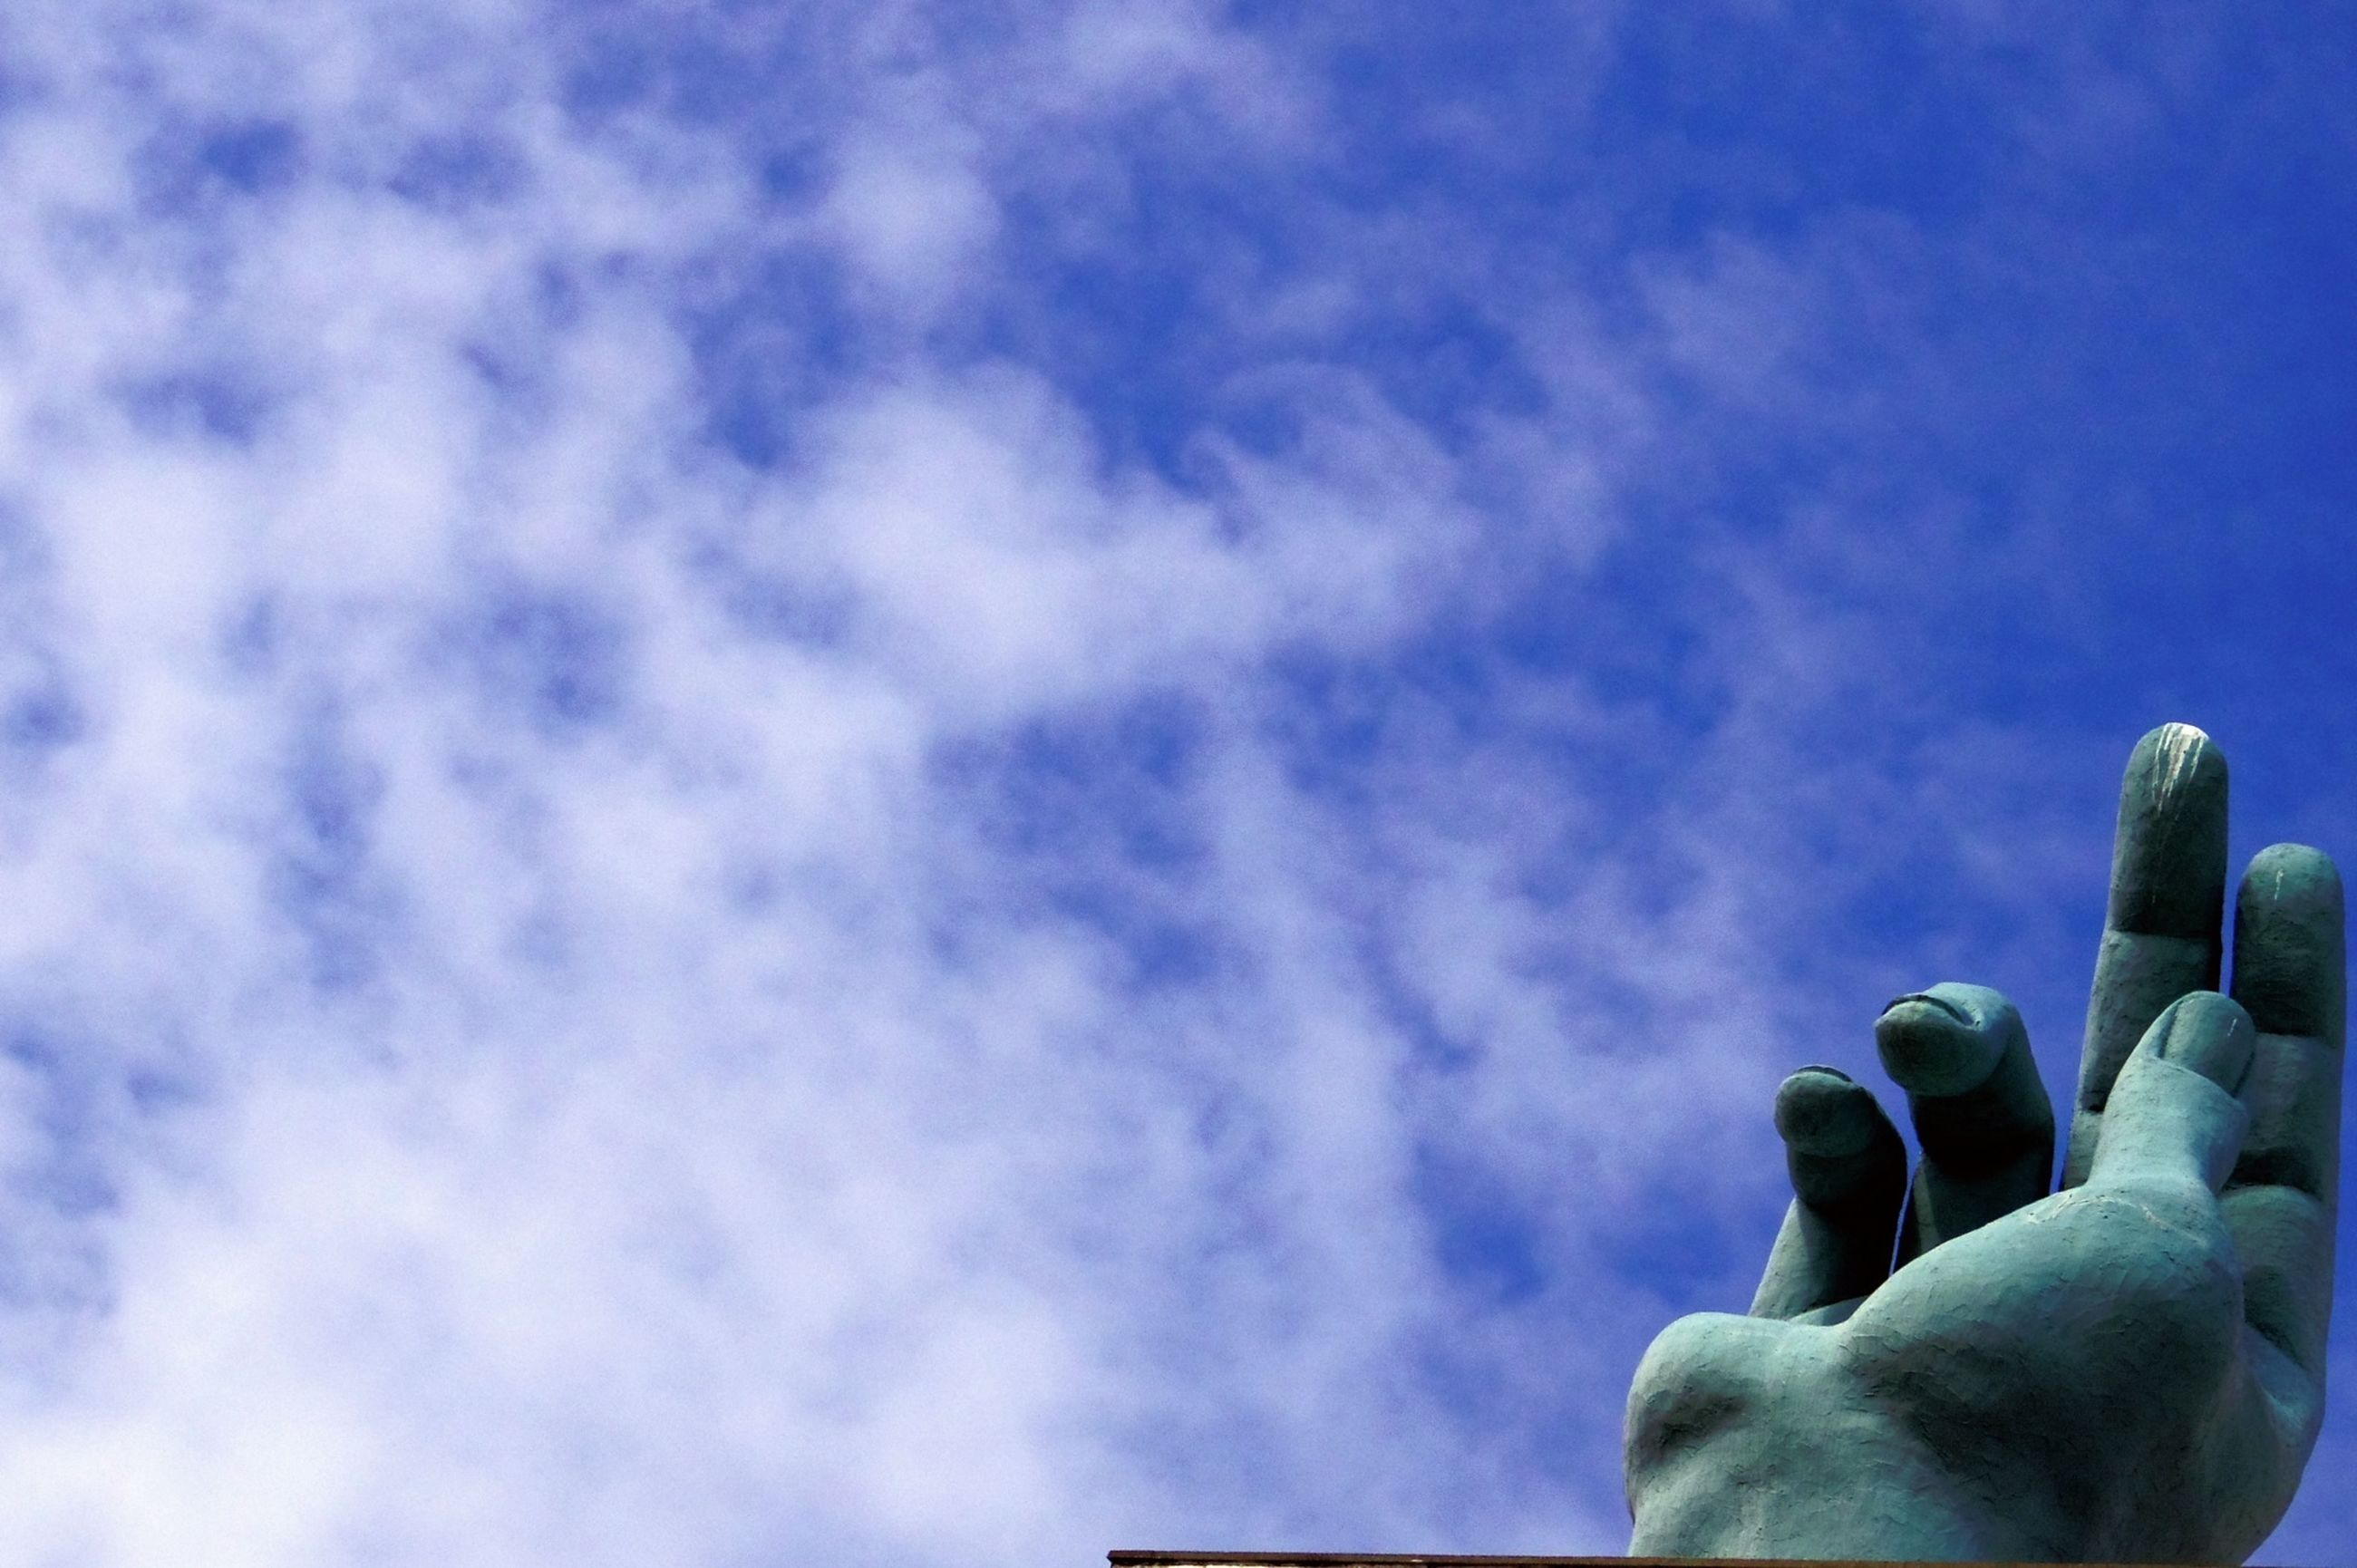 low angle view, sky, blue, cloud - sky, cloud, animal themes, human representation, nature, statue, sculpture, cloudy, outdoors, silhouette, beauty in nature, day, no people, wildlife, animals in the wild, tranquility